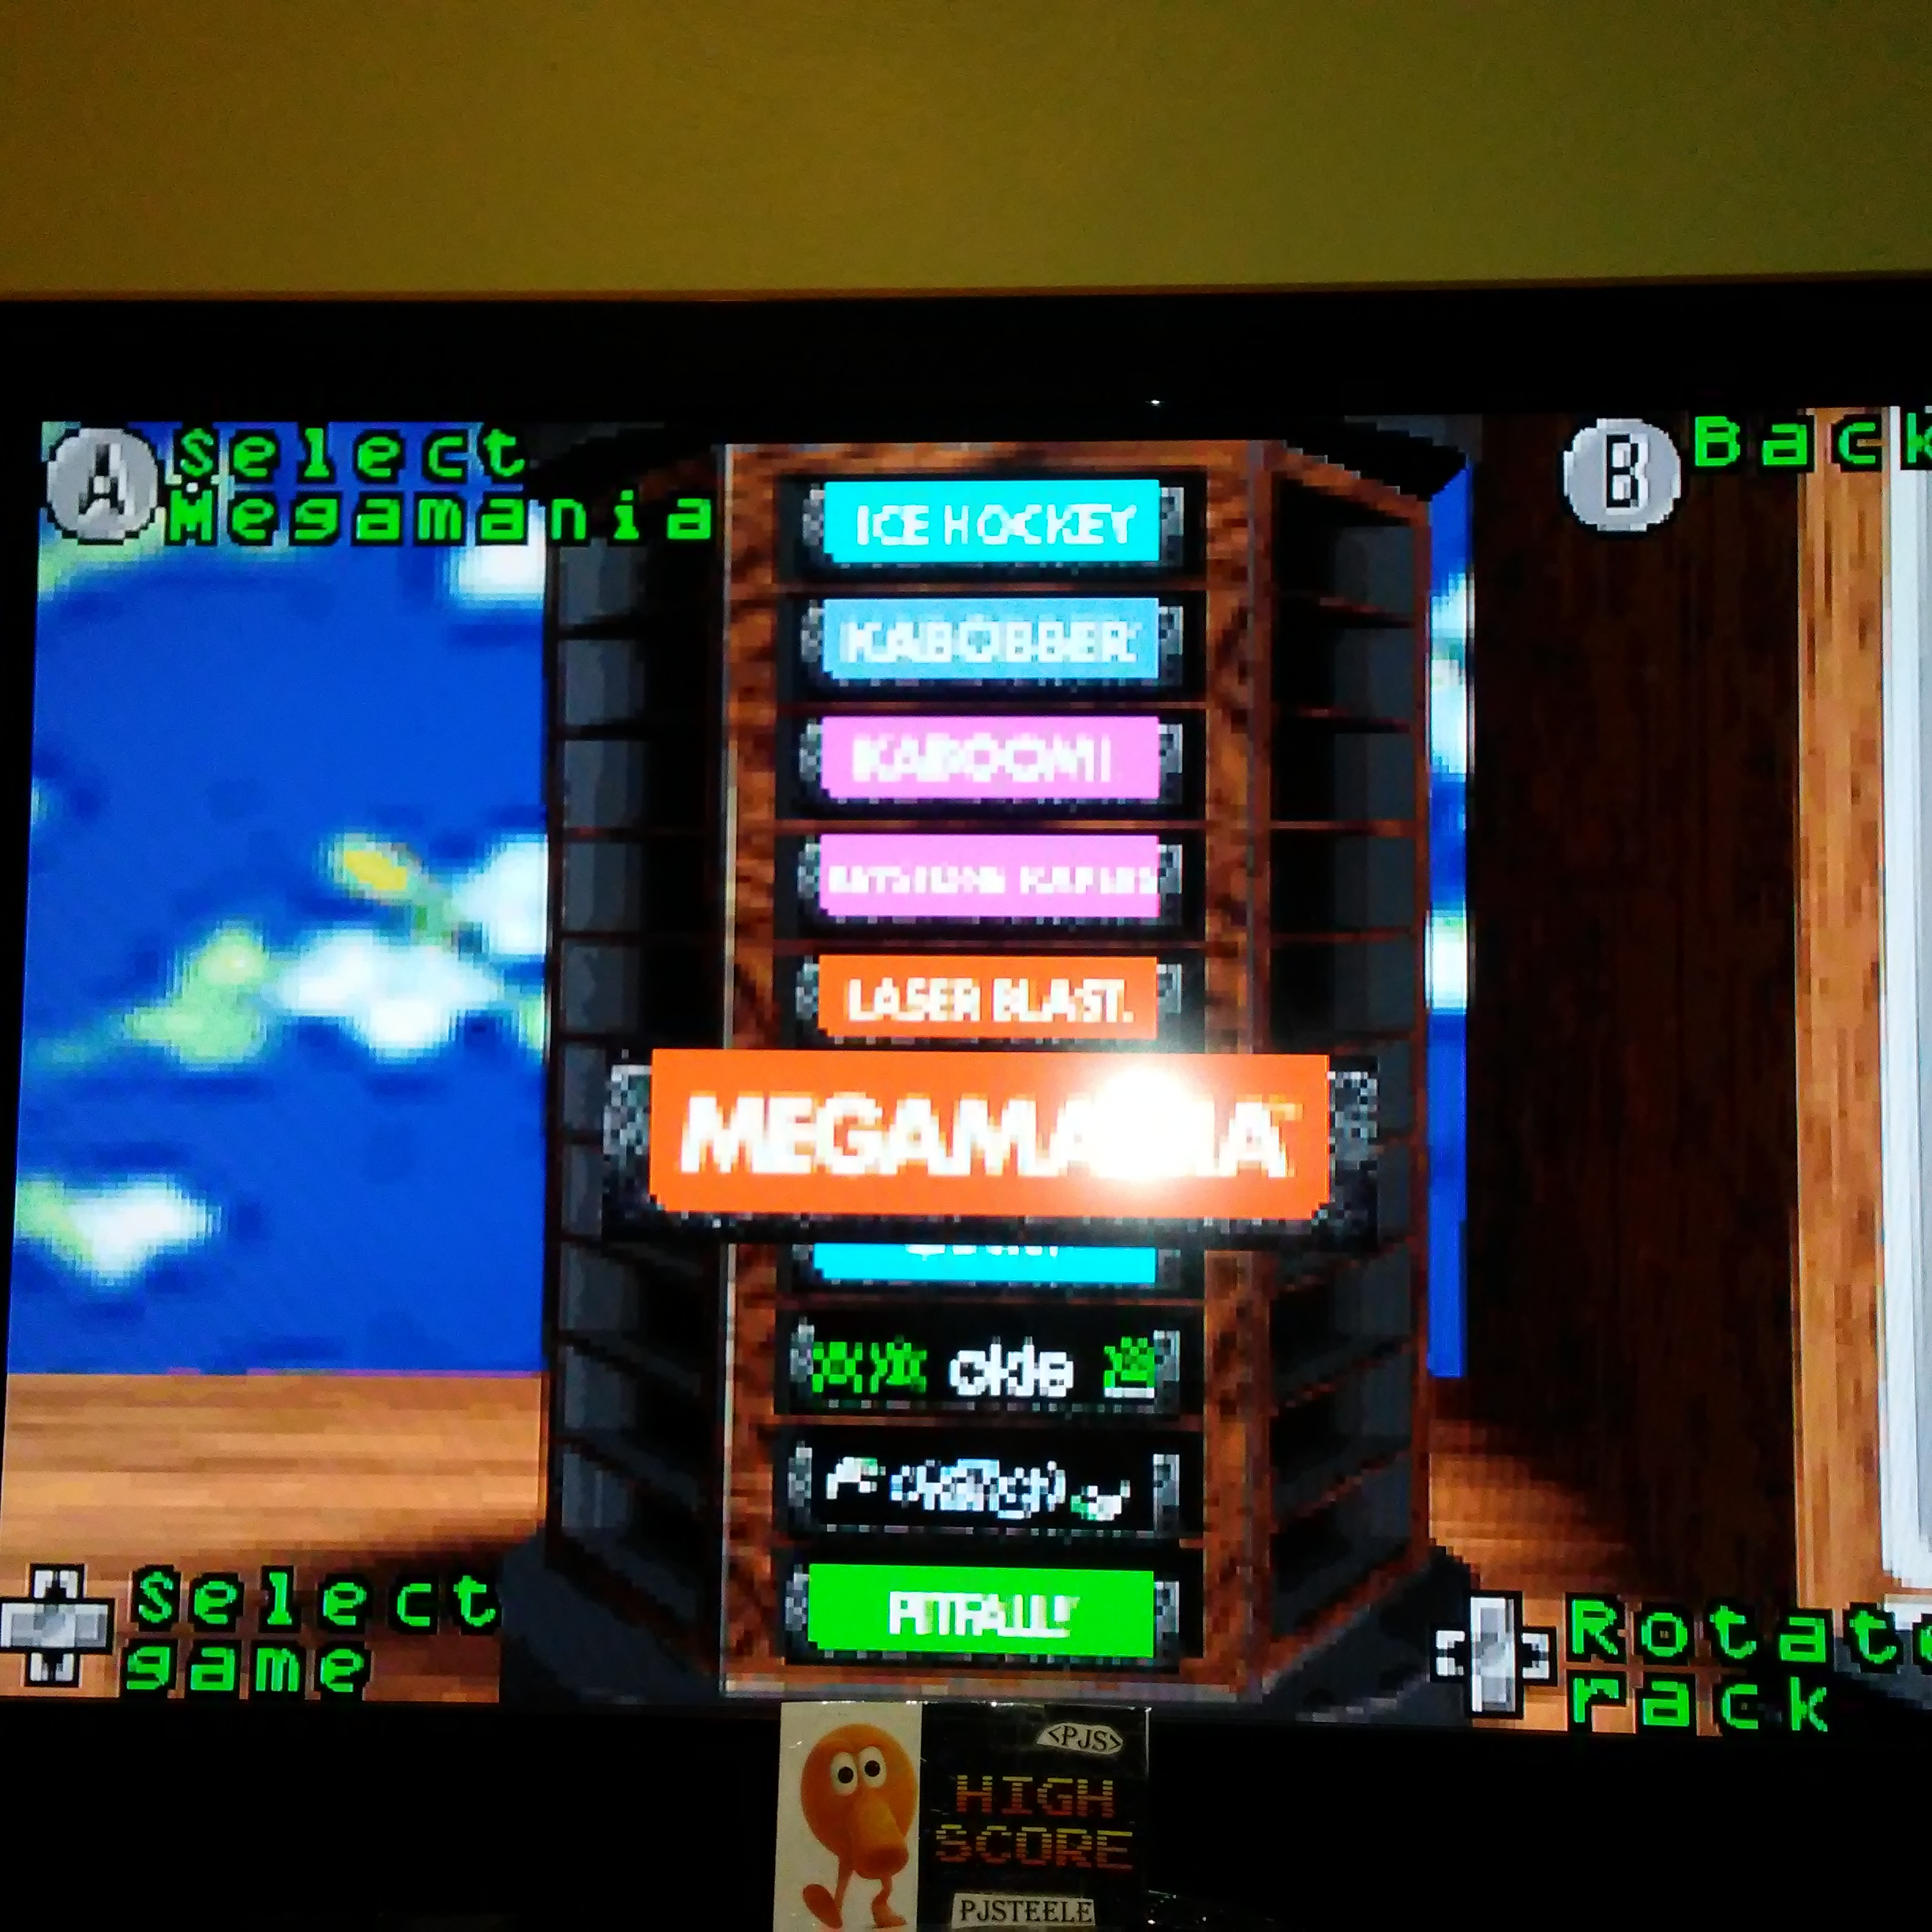 Pjsteele: Activision Anthology: Megamania [Game 1B] (GBA Emulated) 78,550 points on 2017-12-04 22:02:09